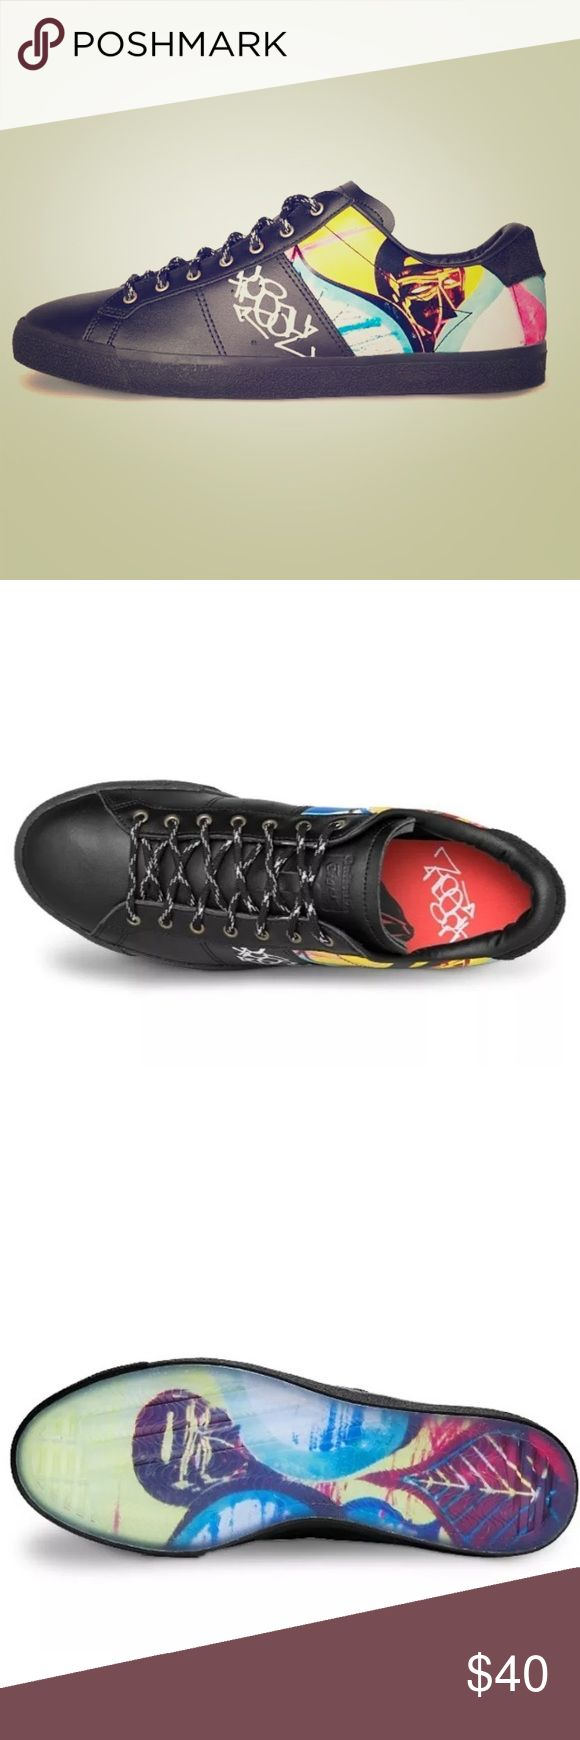 ONITSUKA TIGER Lawnship unisex EU 39 Brand: Asics Style:  Lawnship Model: D6P1L-9090 Color: Black, graffiti art  Store display shoes 100% Brand New and Authentic EU 39 Mens 6 Onitsuka Tiger by Asics Shoes Sneakers